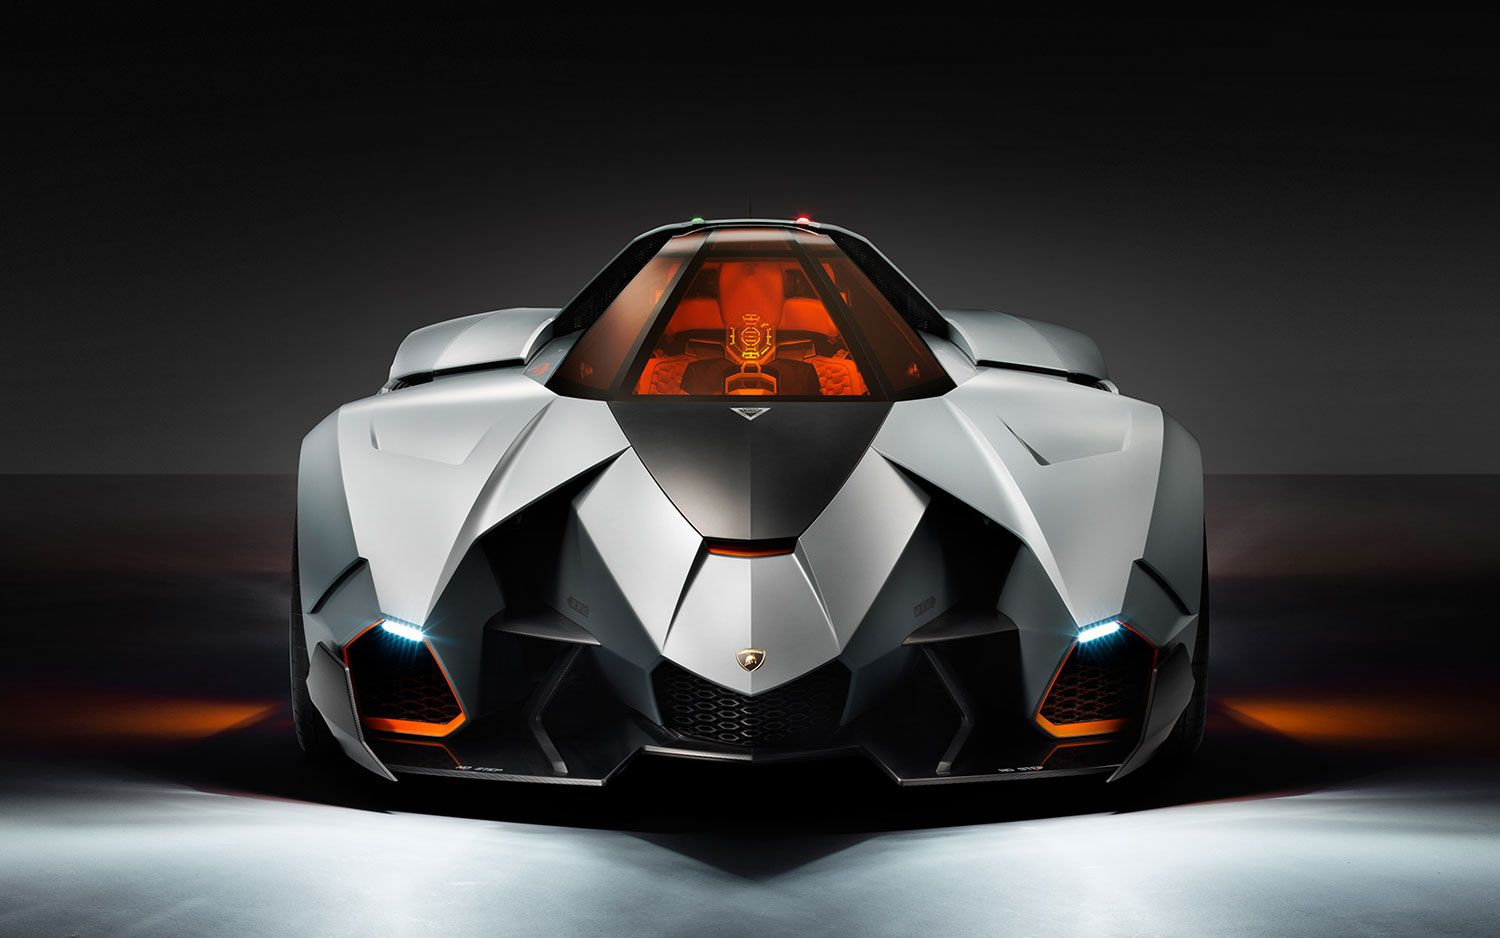 Charmant Browse This Site To Find More Details On Lamborghini Egoista Concept Car  Price And Features. Lamborghini Egoista Was Inspired By The Design Of An  Apache